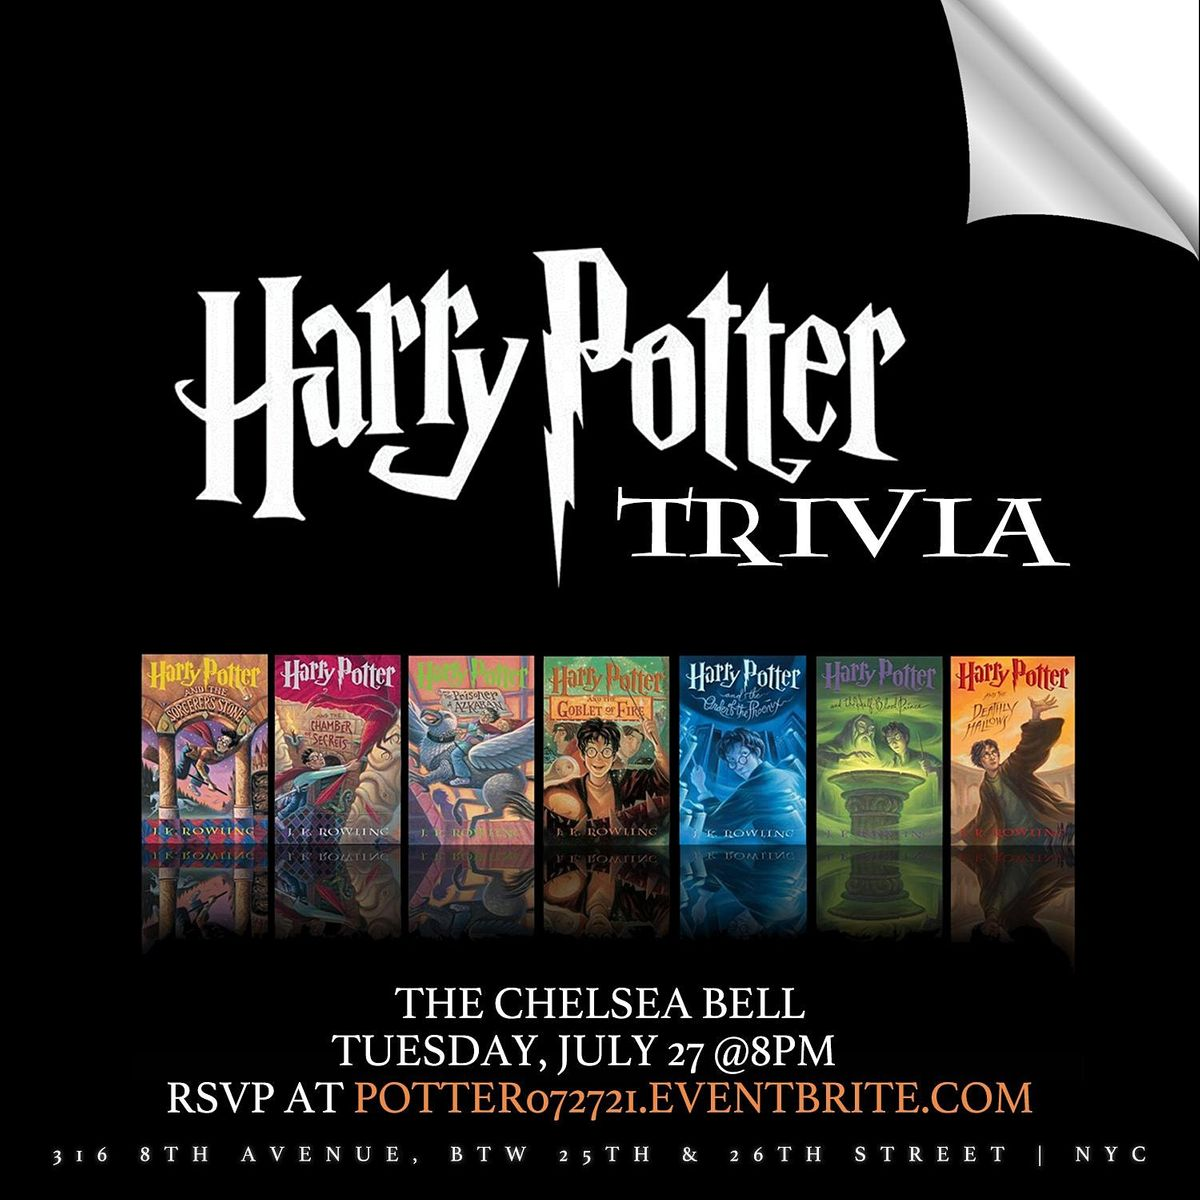 Harry Potter (Book) Trivia | Event in New York | AllEvents.in